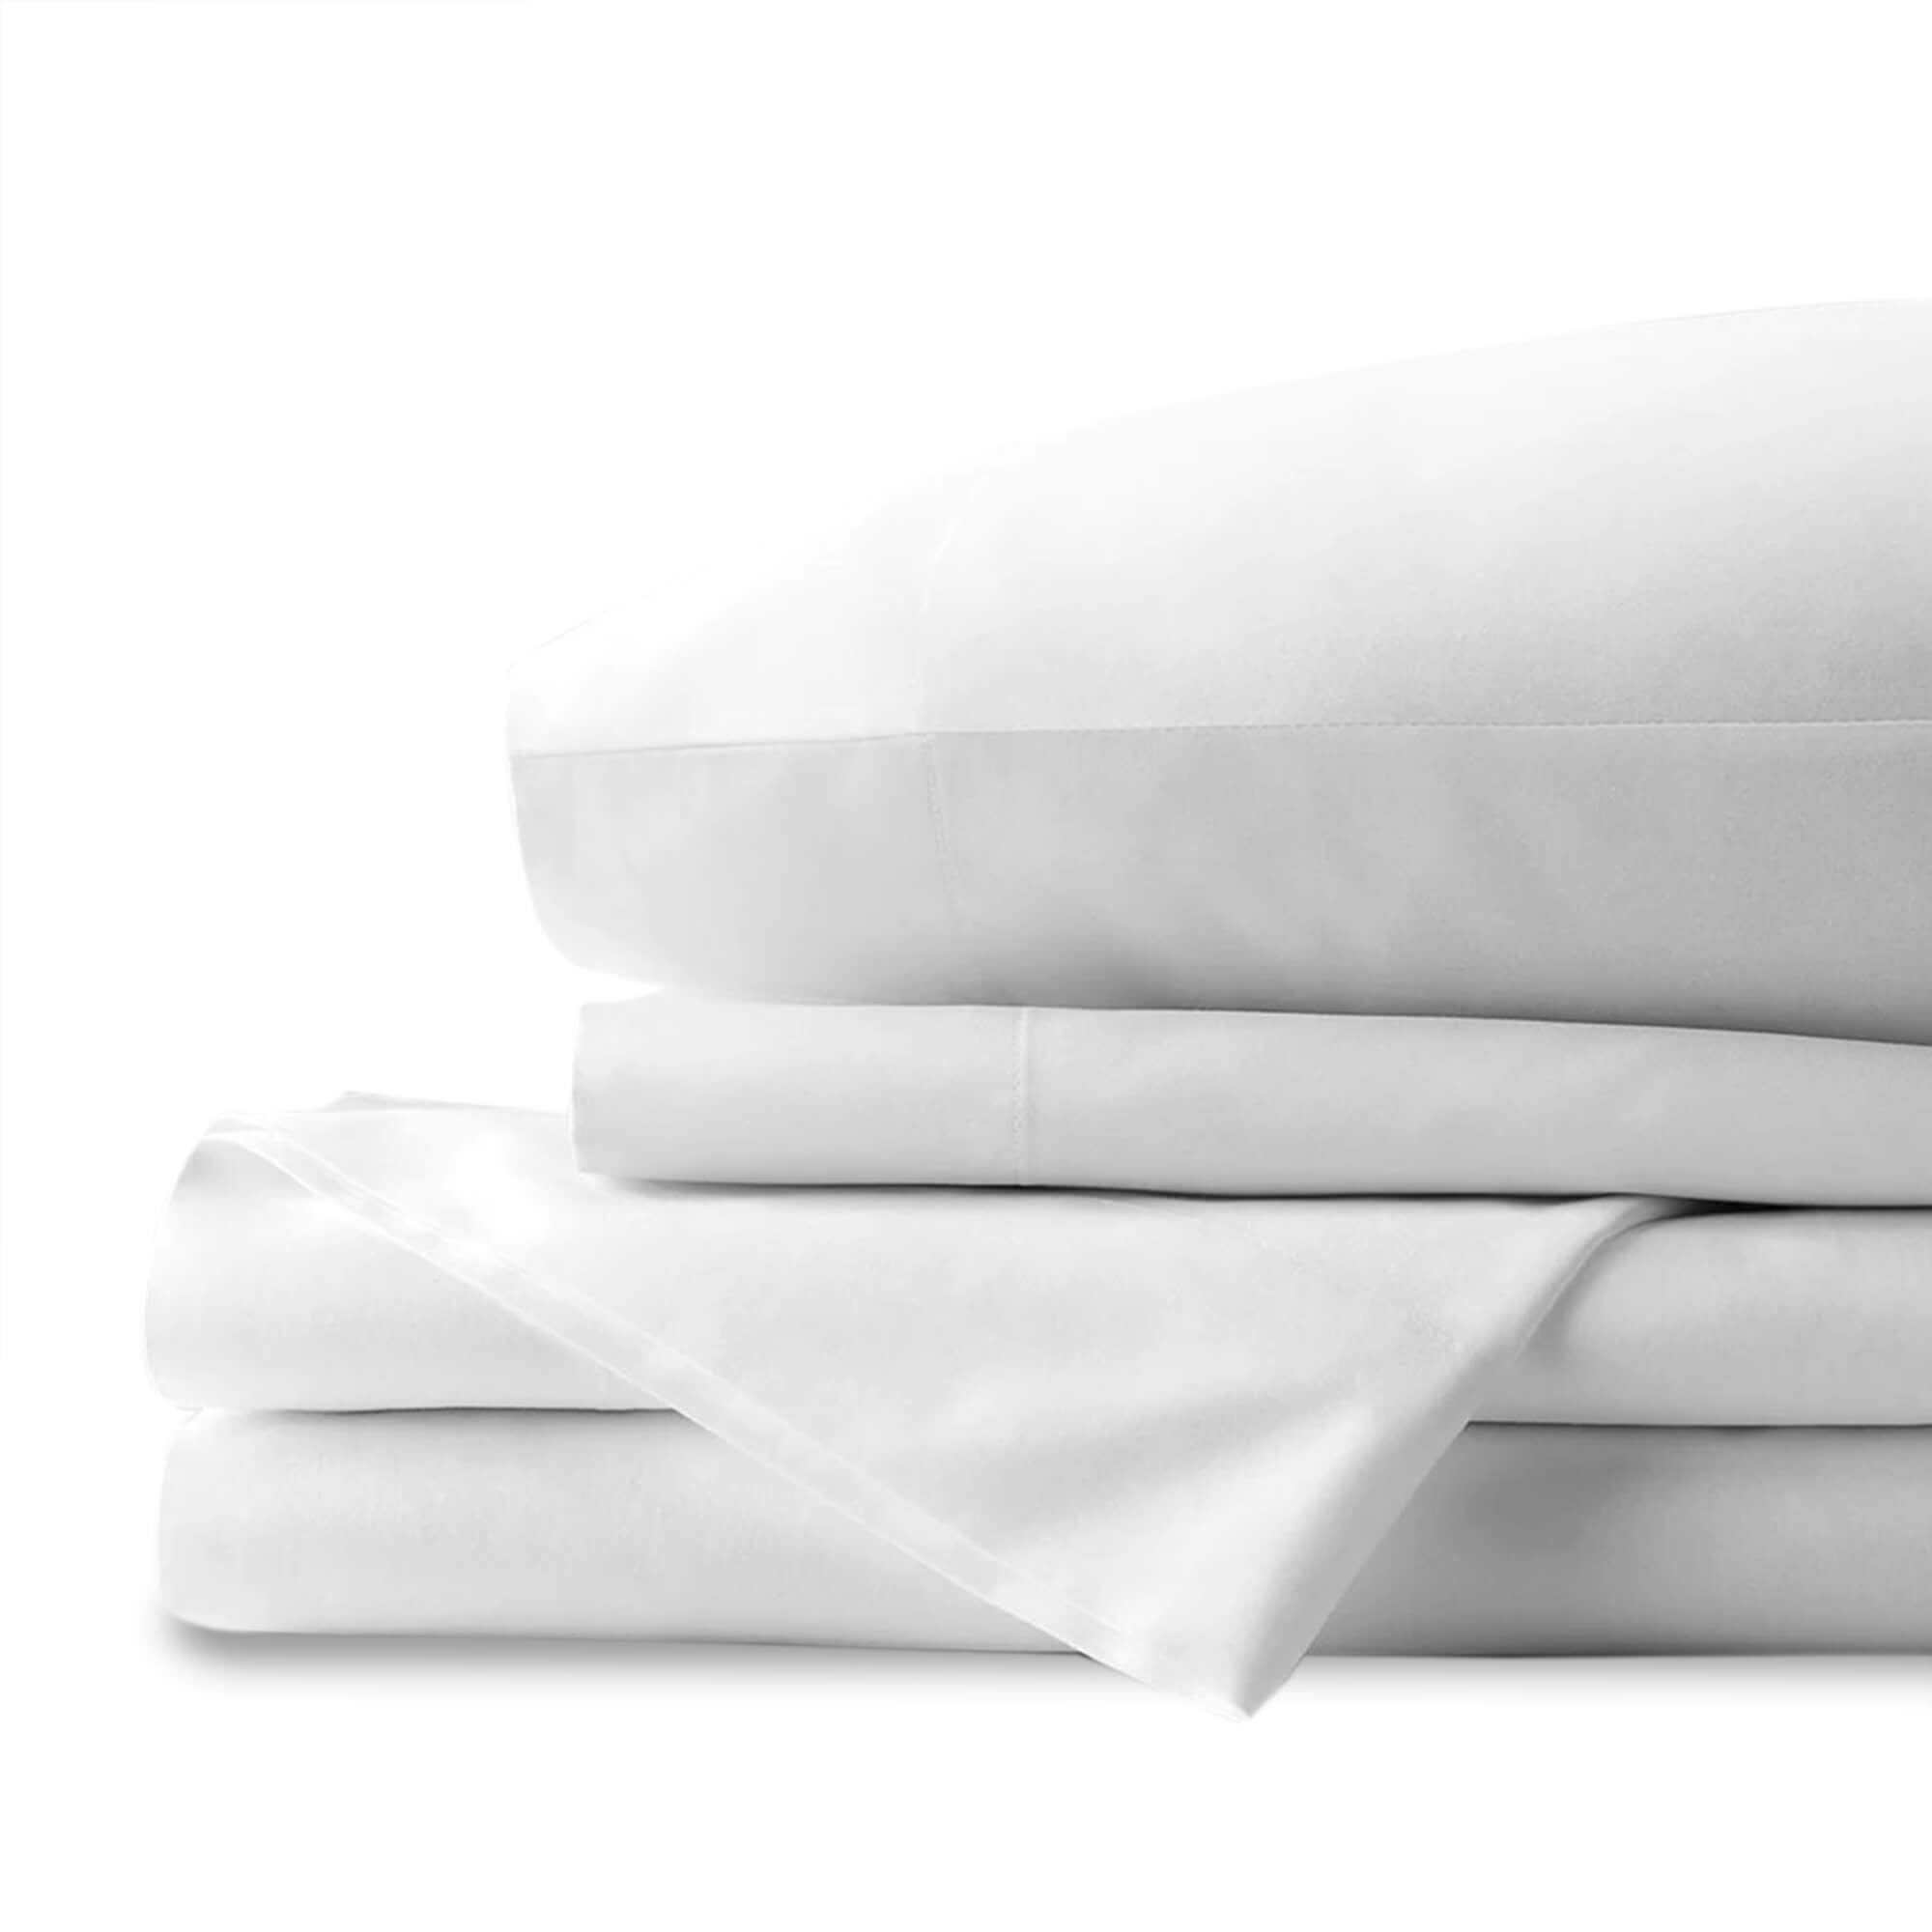 Delilah Home 100% Organic Cotton Bed Sheets